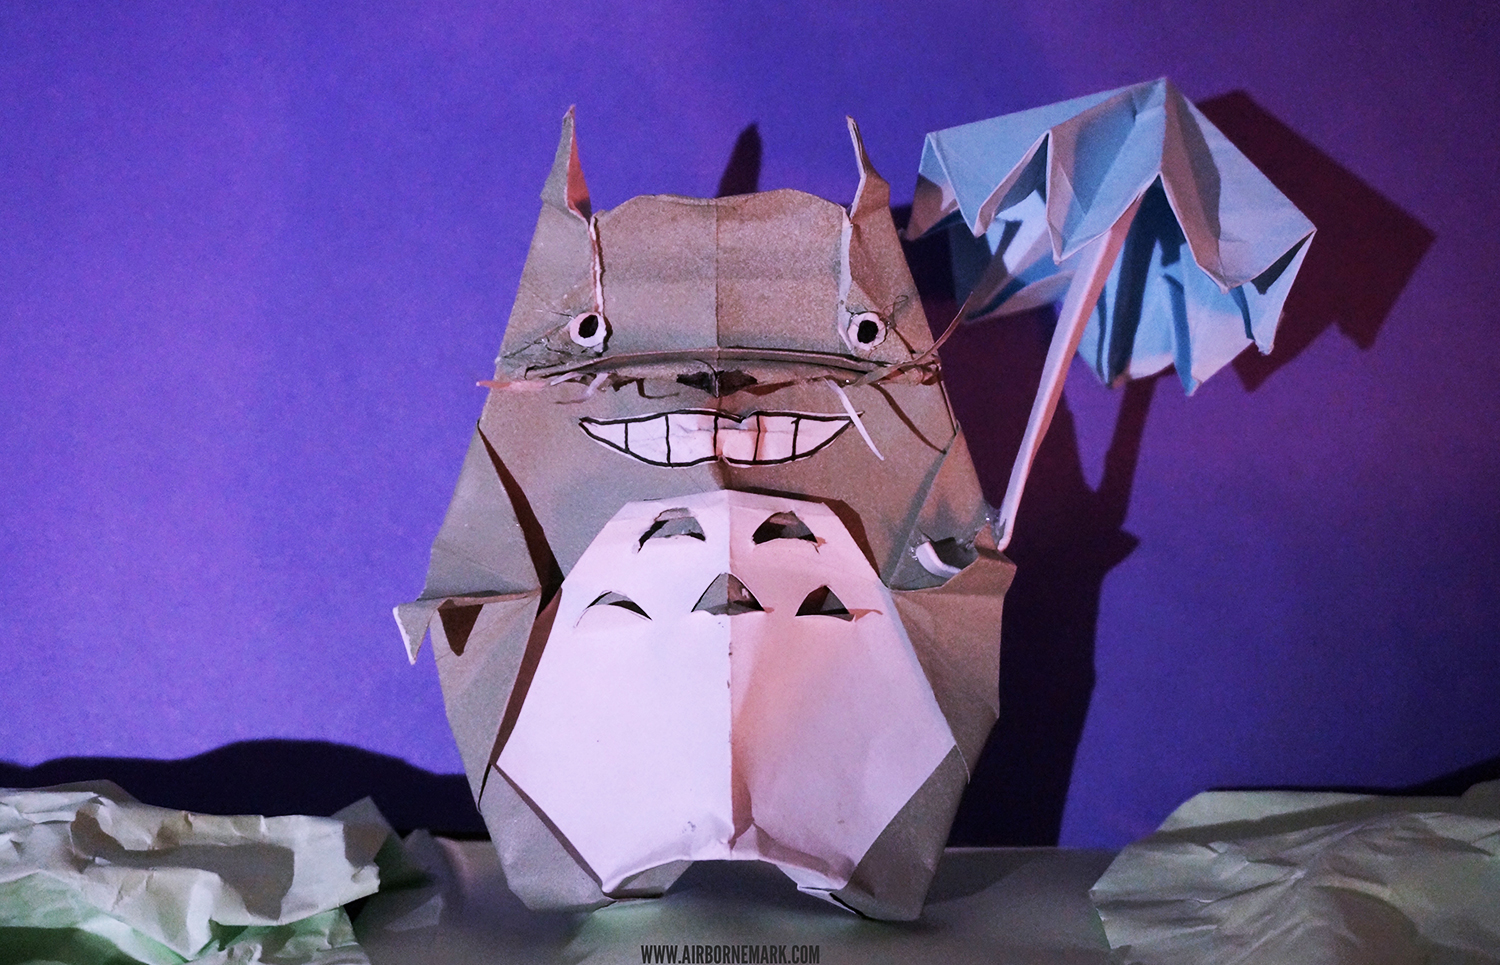 Artist Creates Origami Street Art Based Off of Classic Film Totoro (Video)